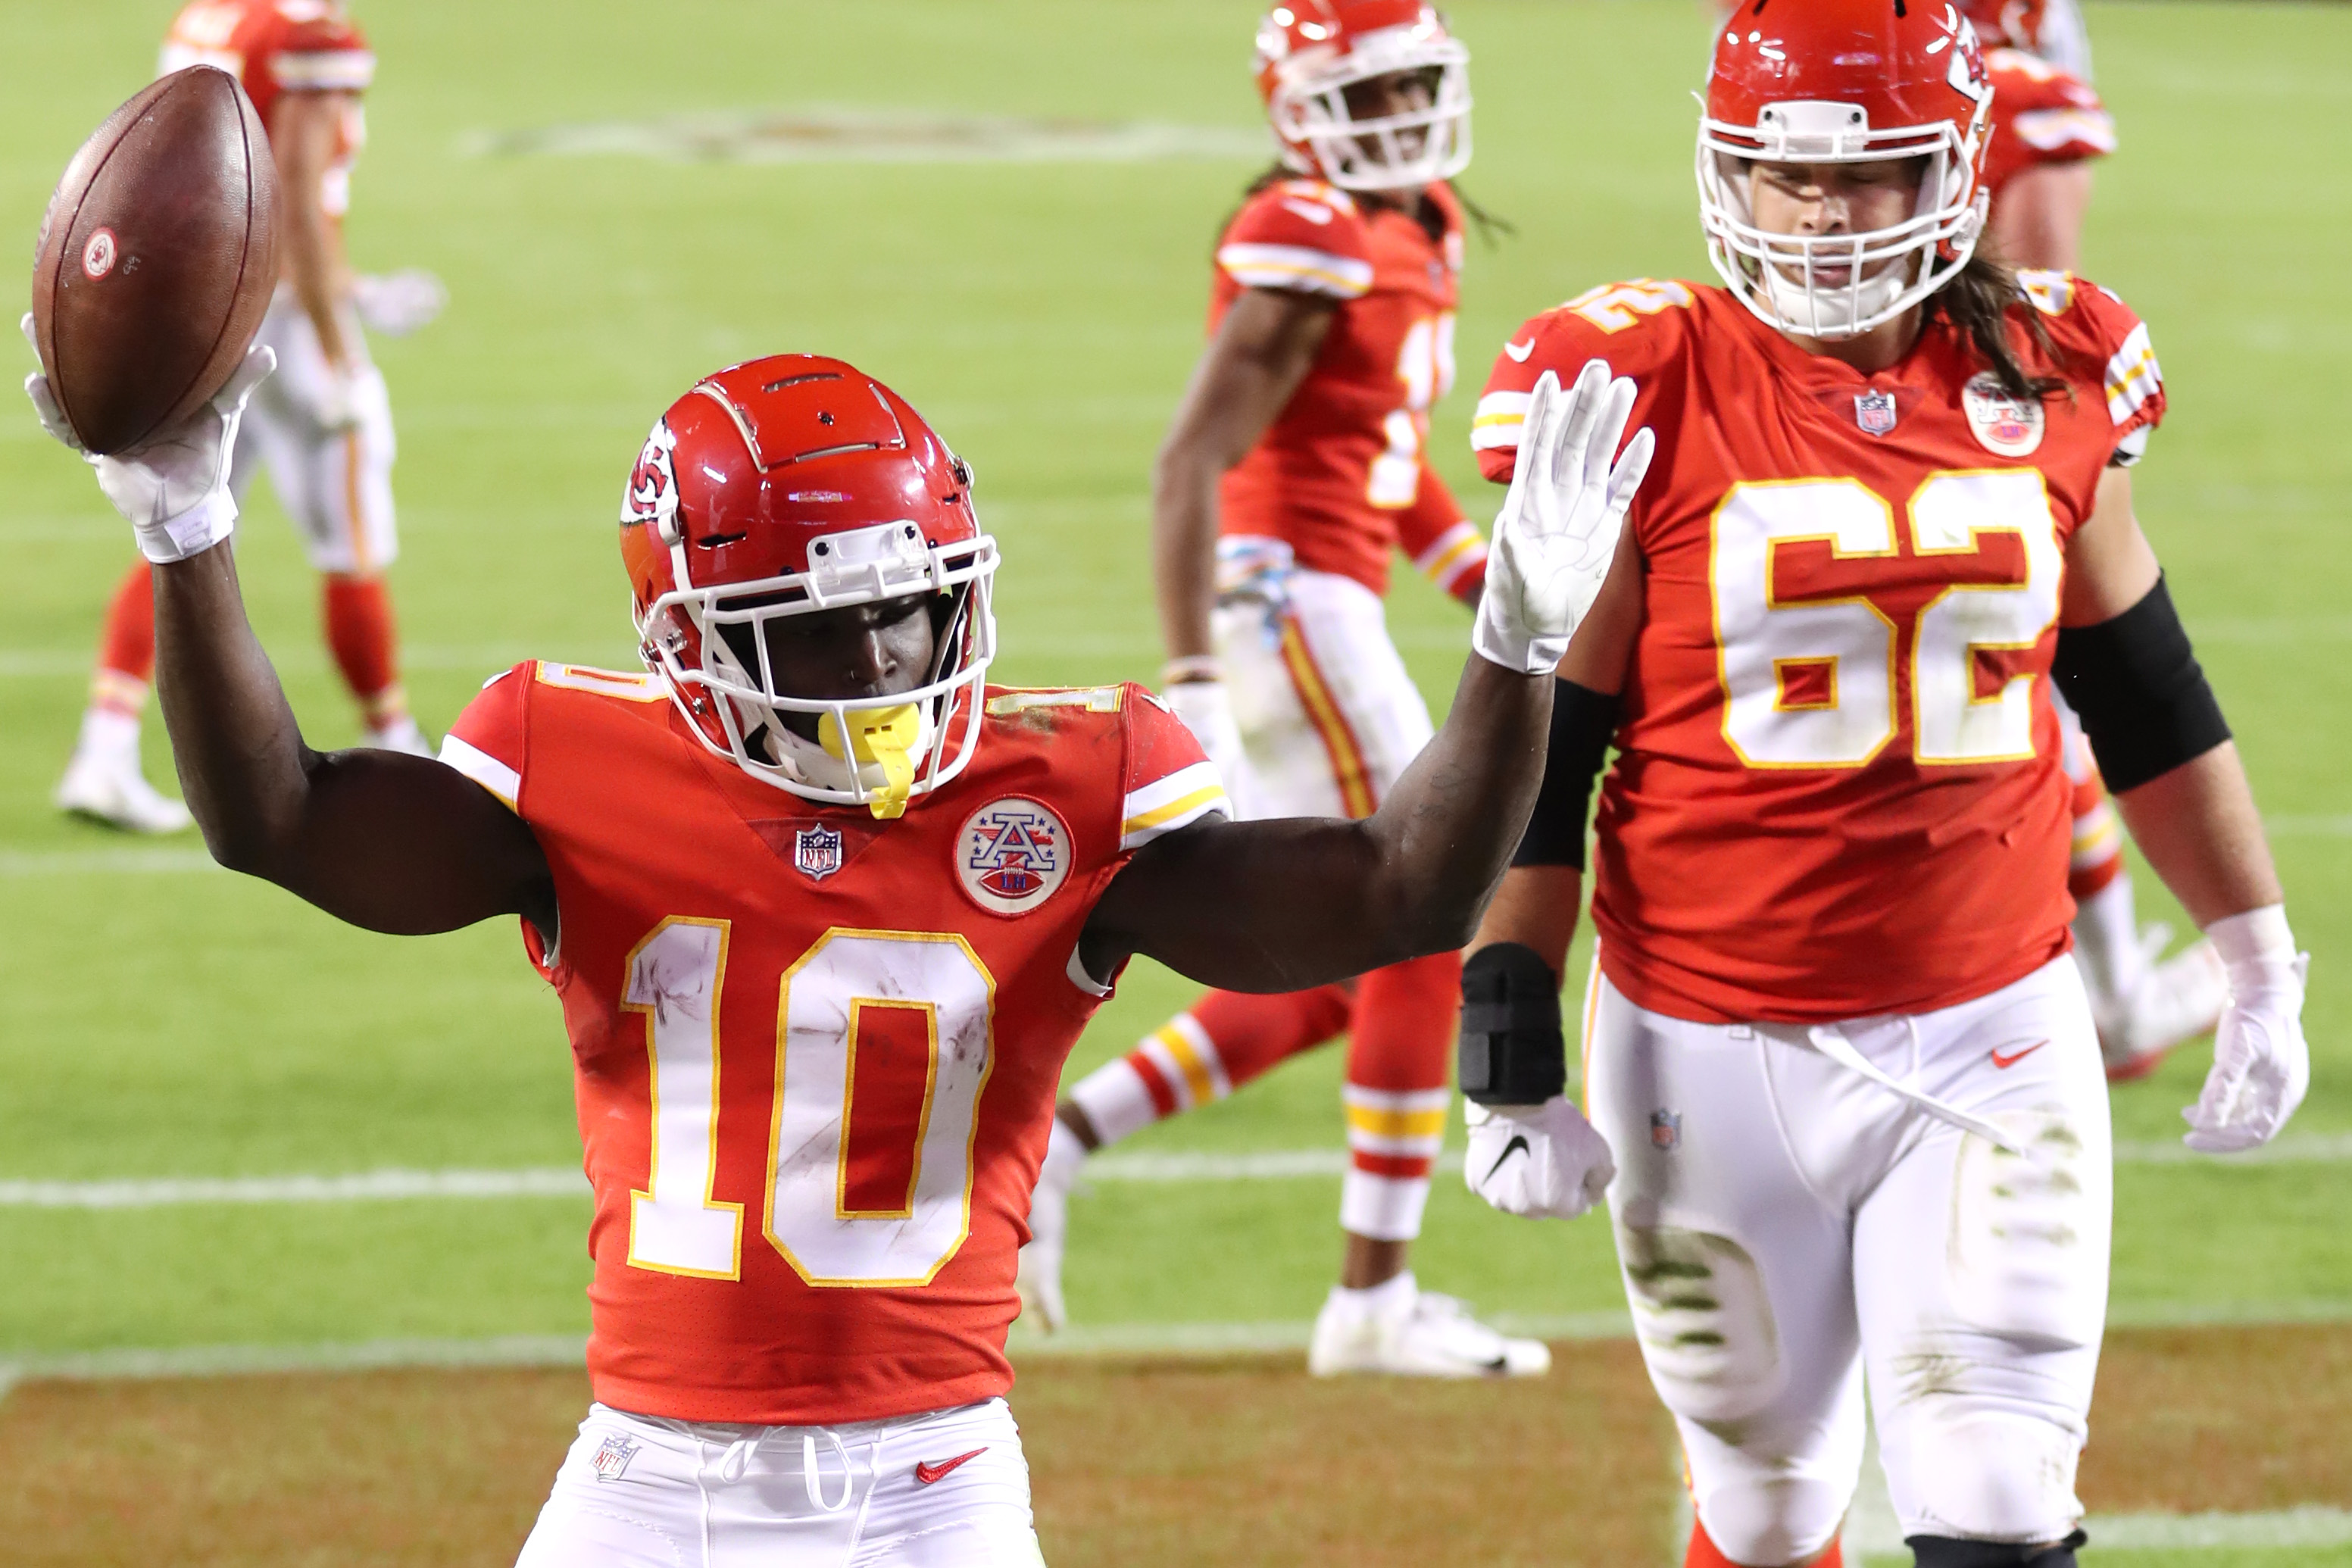 Tyreek Hill celebrates after scoring a touchdown